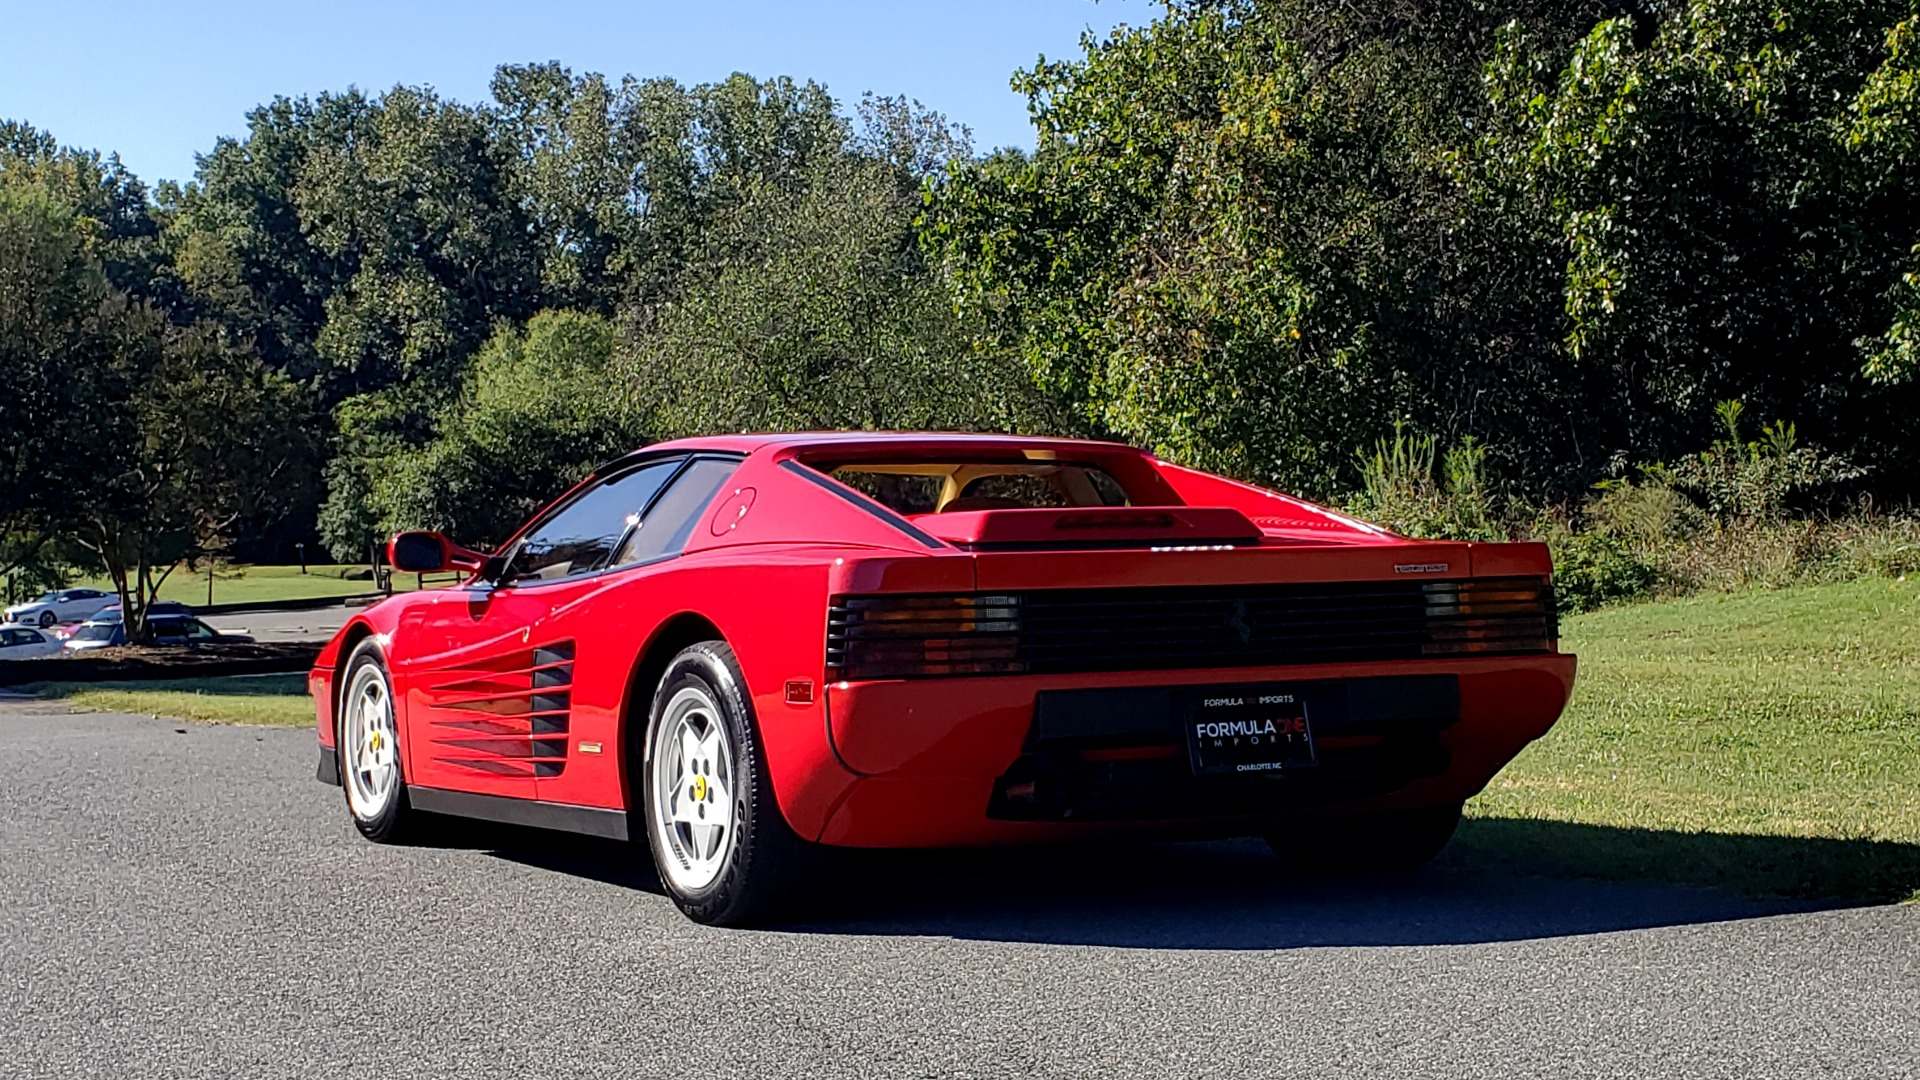 Used 1988 Ferrari TESTAROSSA COUPE / 4.9L FLAT-12 / 5-SPEED MANUAL / LOW MILES SUPER CLEAN for sale $128,999 at Formula Imports in Charlotte NC 28227 5